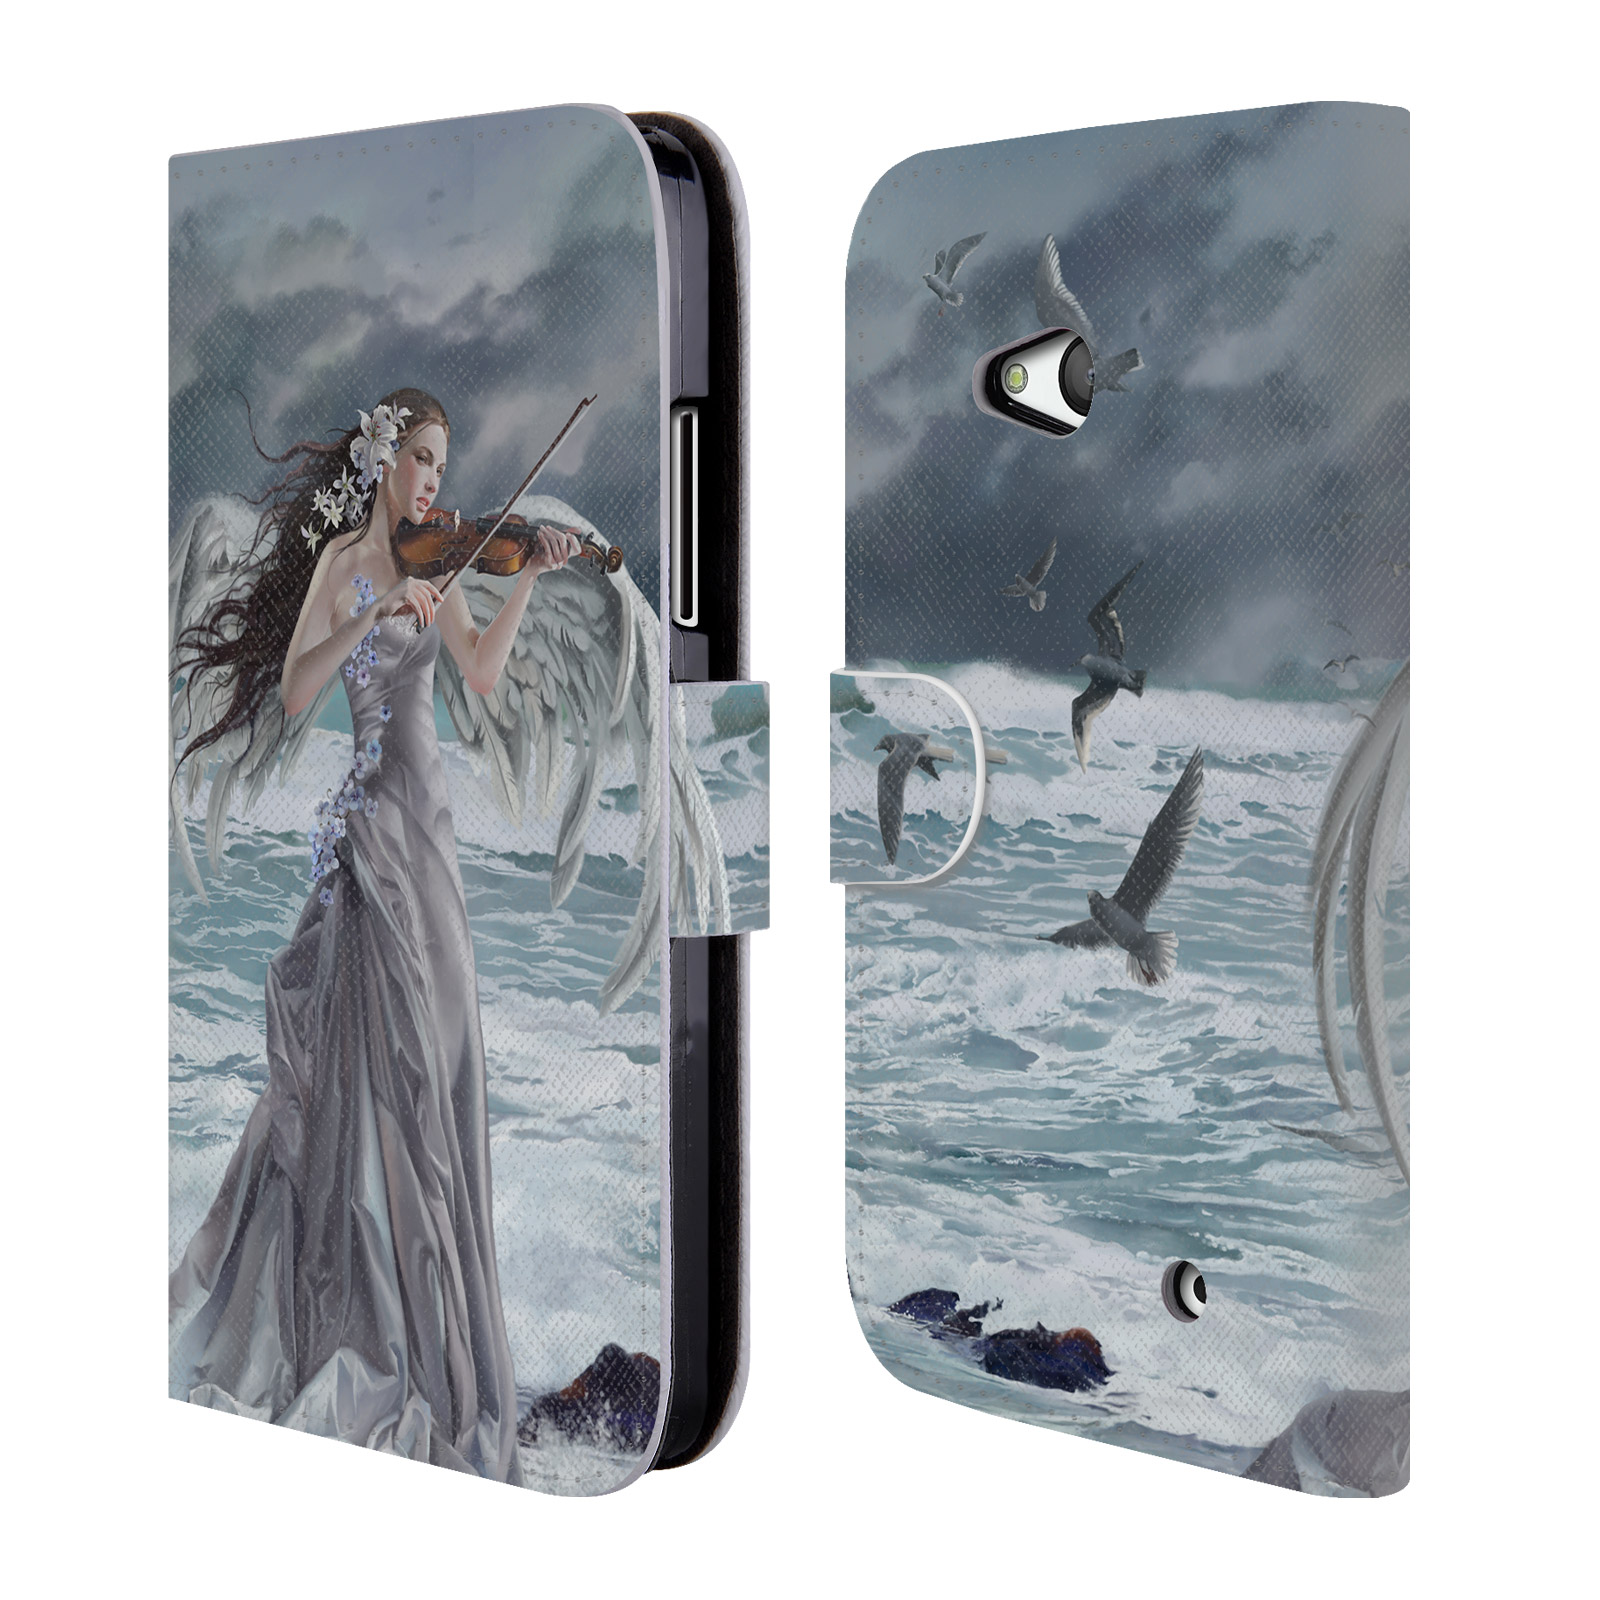 OFFICIAL NENE THOMAS ANGELS LEATHER BOOK WALLET CASE FOR MICROSOFT NOKIA PHONES